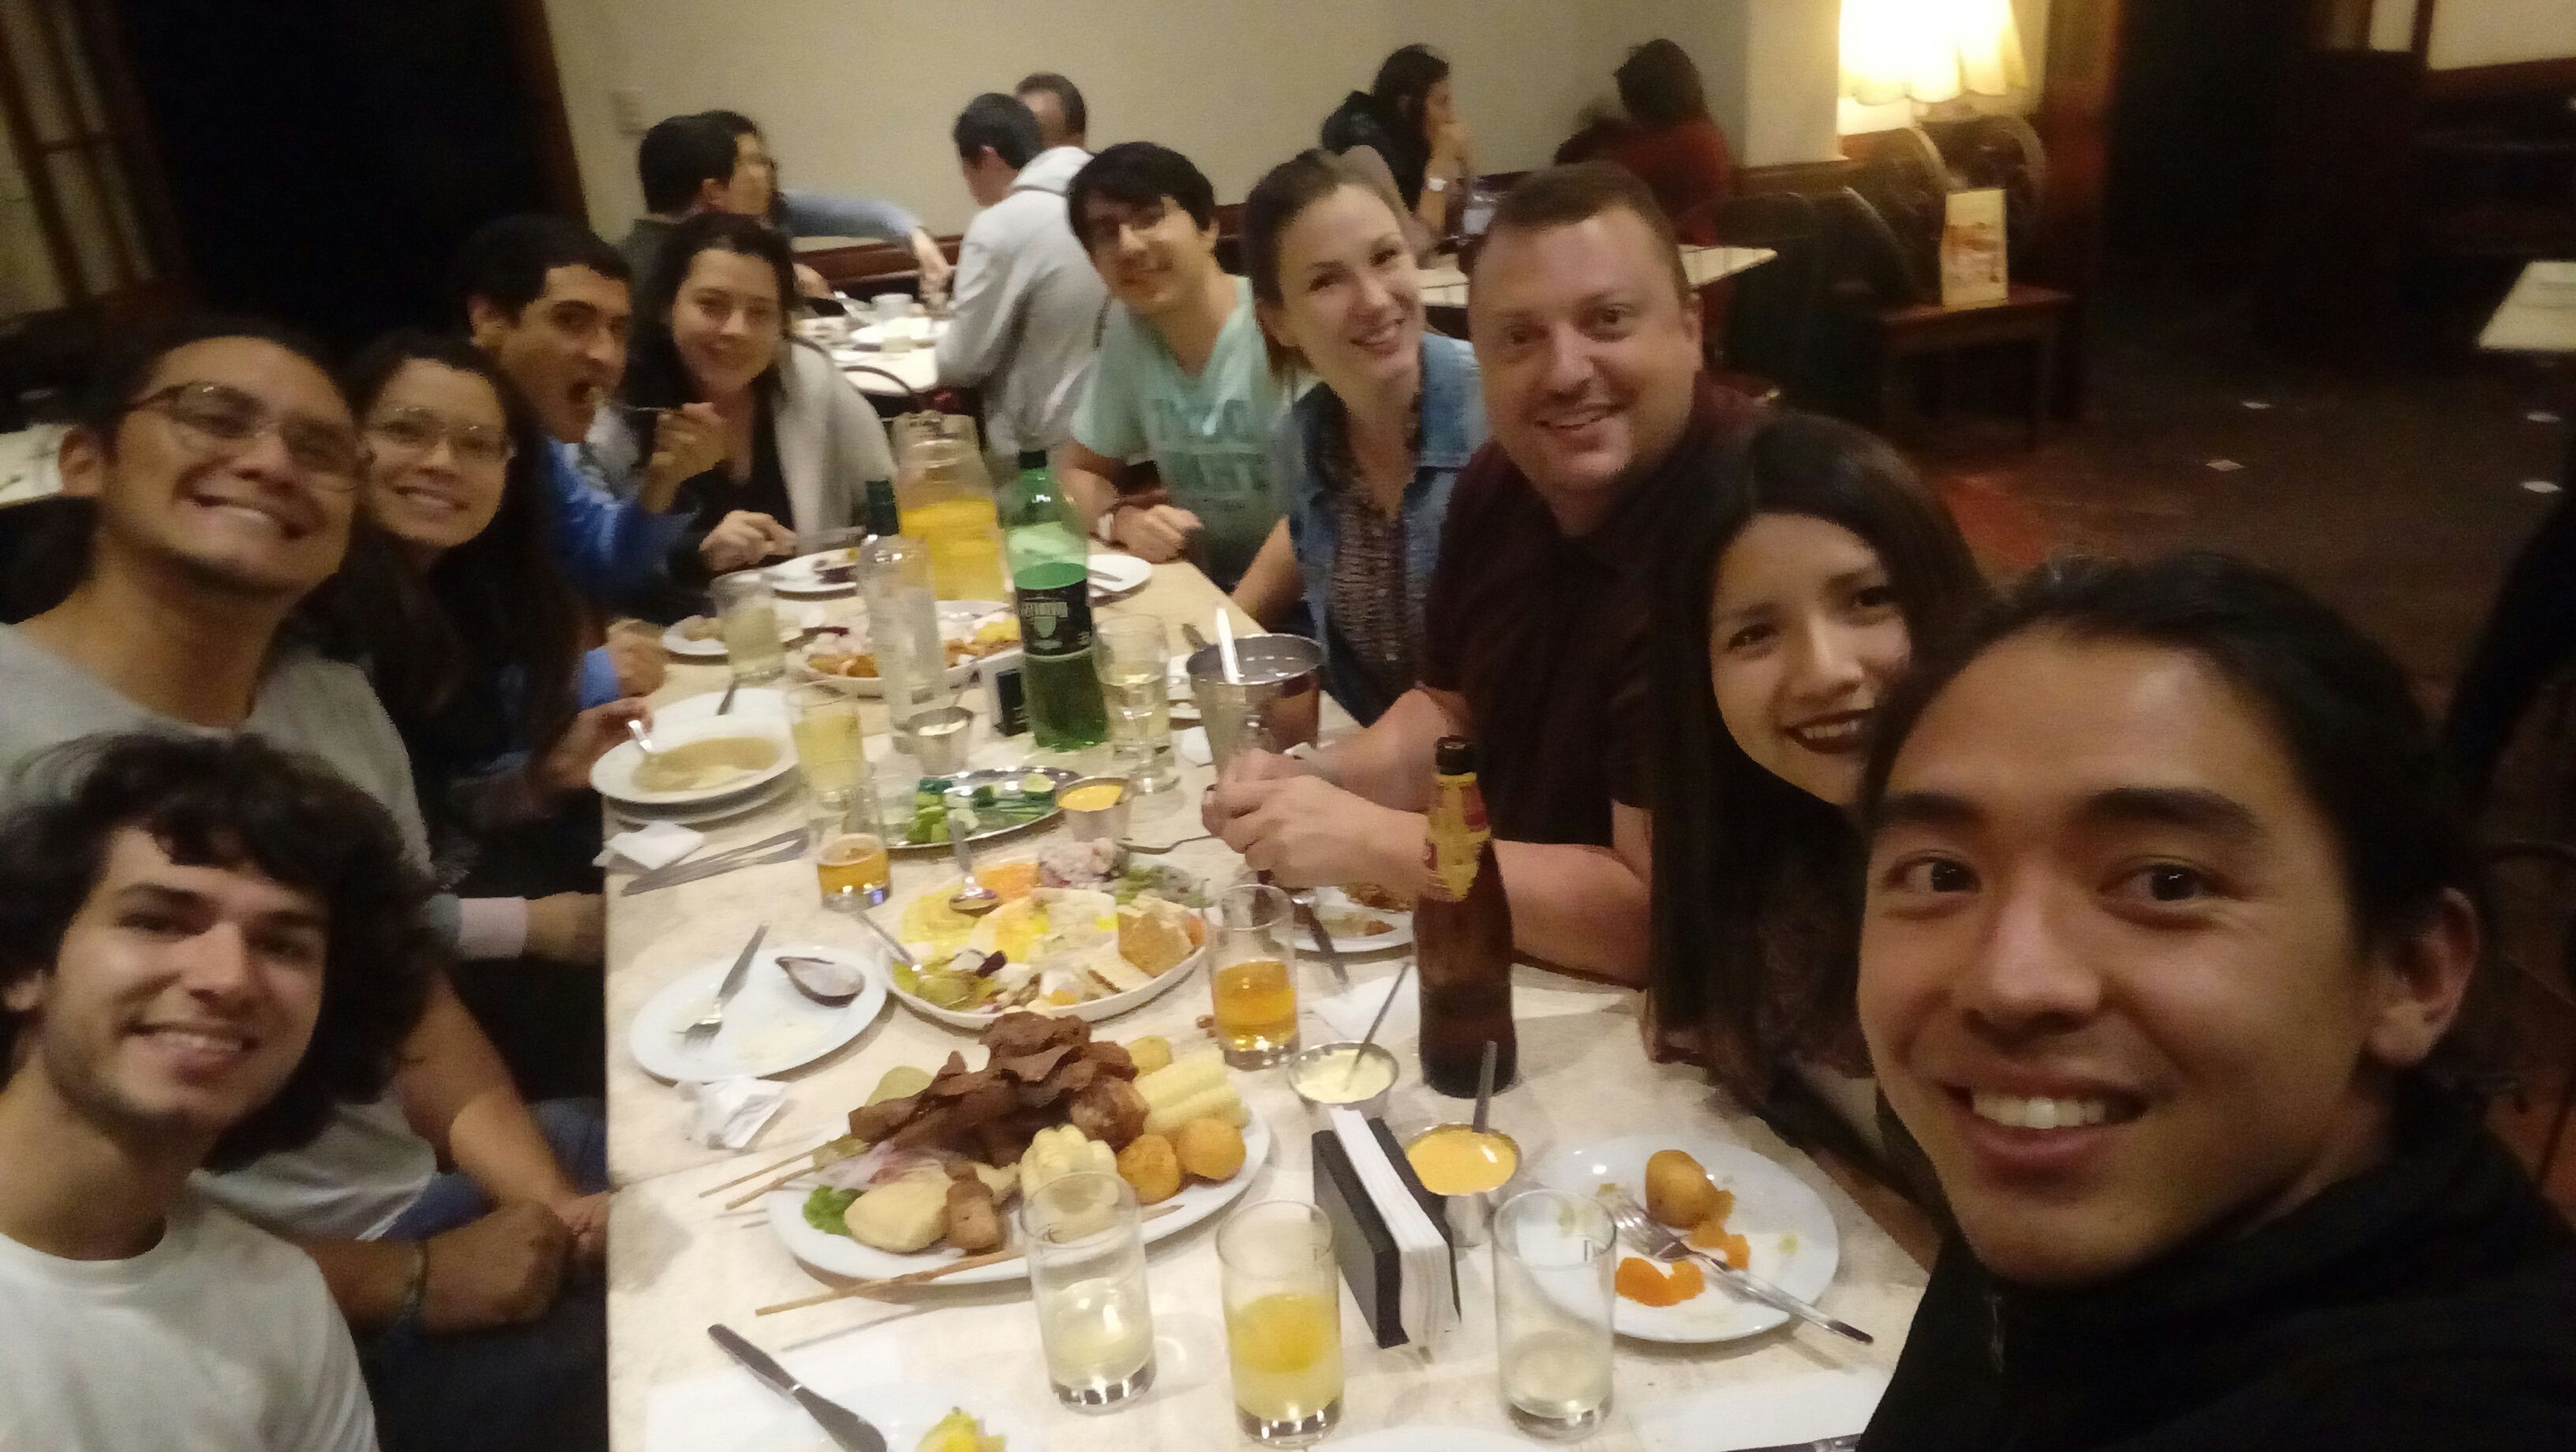 The Compadre team having dinner with Jeremy and Bianca in their first night in Peru.